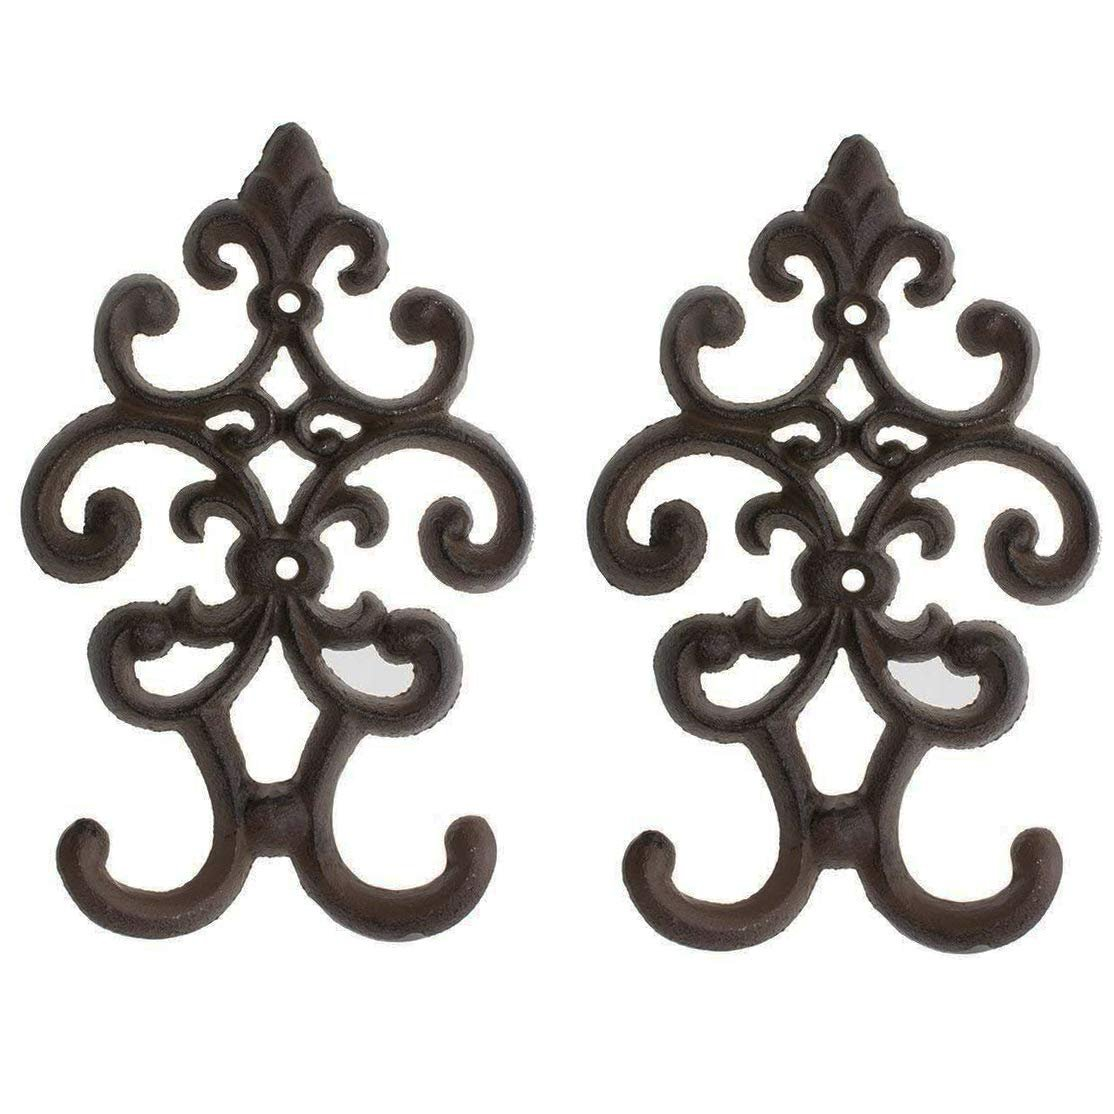 Comfify Cast Iron Vintage Double Wall Hook Decorative Wall Mounted Coat Hanger 7 75 X4 8 With Screws And Anchors Set Of 2 Walmart Com Walmart Com